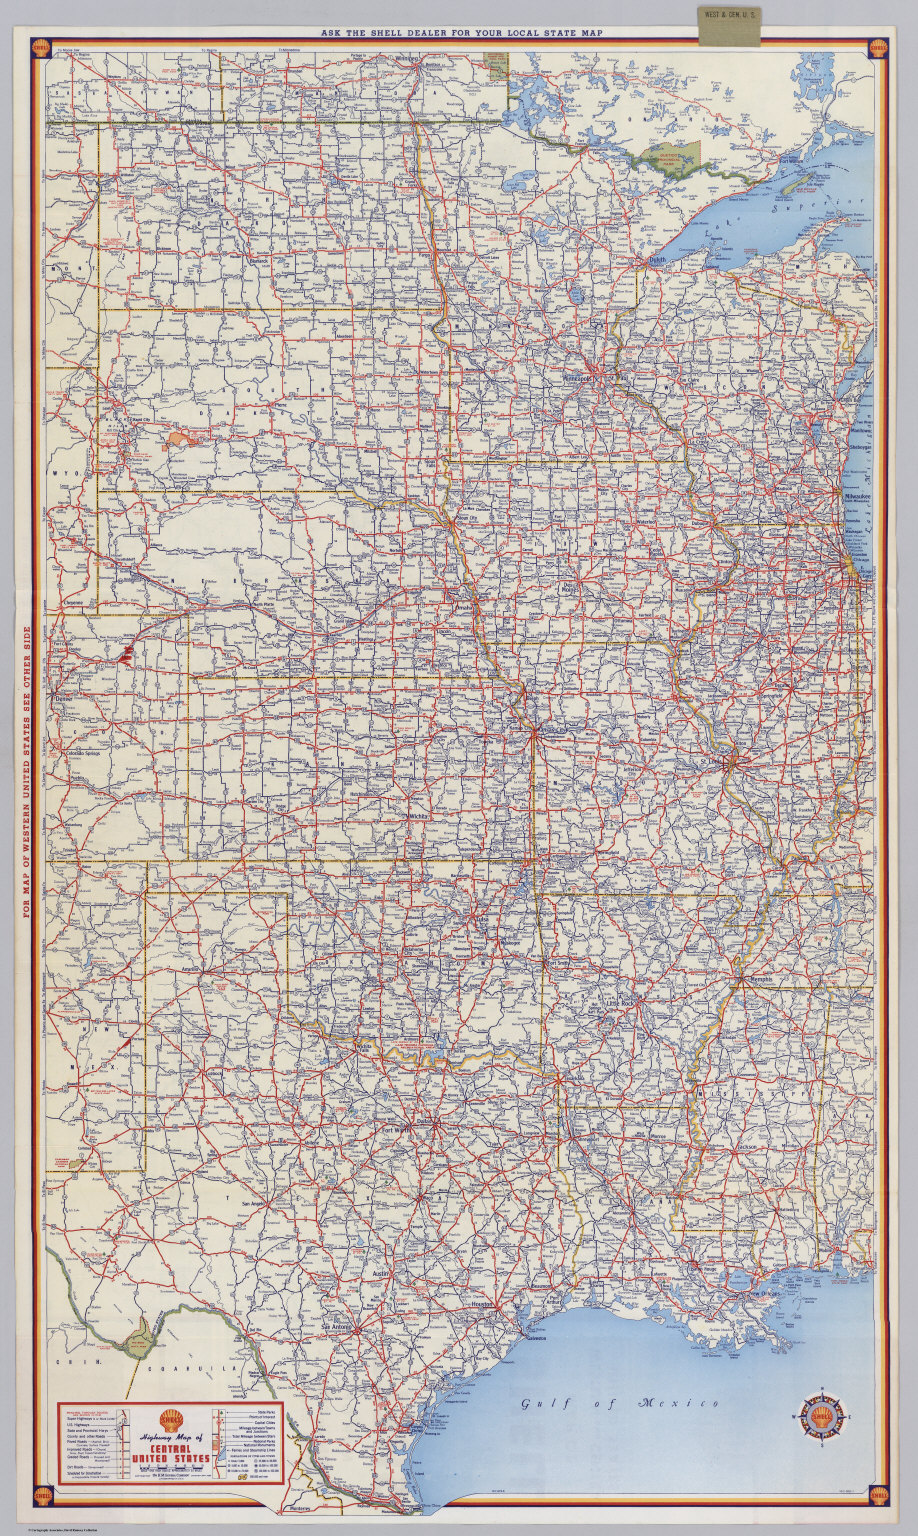 Shell Highway Map Of Central United States David Rumsey